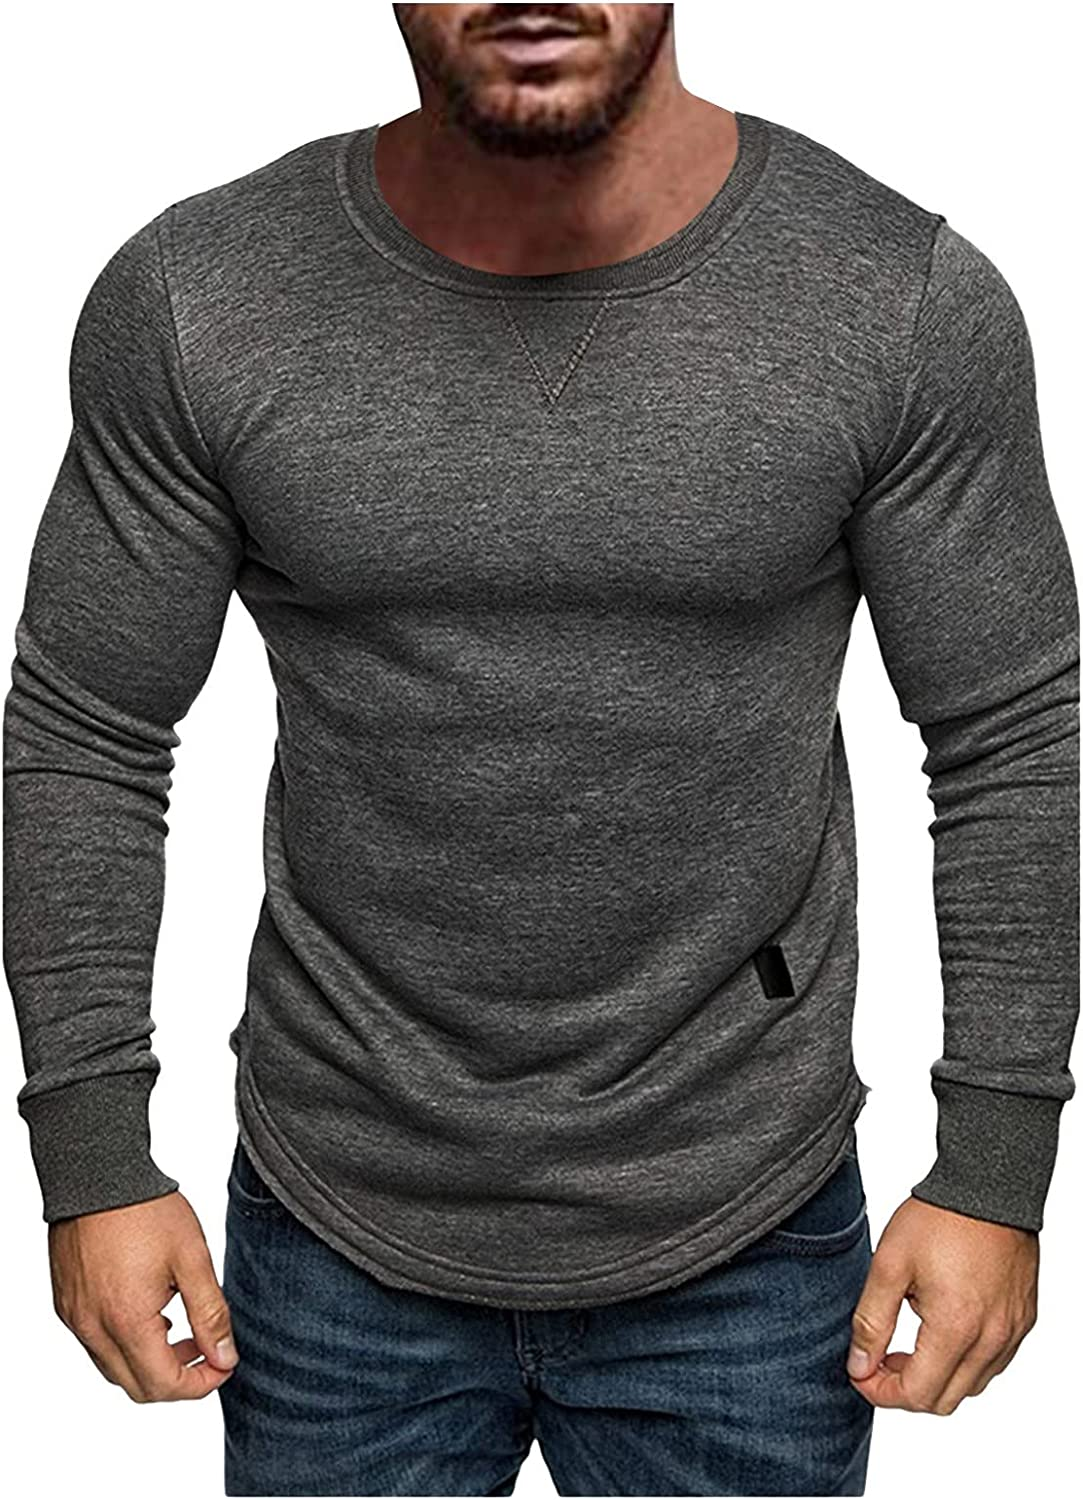 Maryia Men's Long Sleeve Shirts UPF 50+ Moisture Wicking UV Sun Protection Outdoor Casual Dry Fit Active Tops